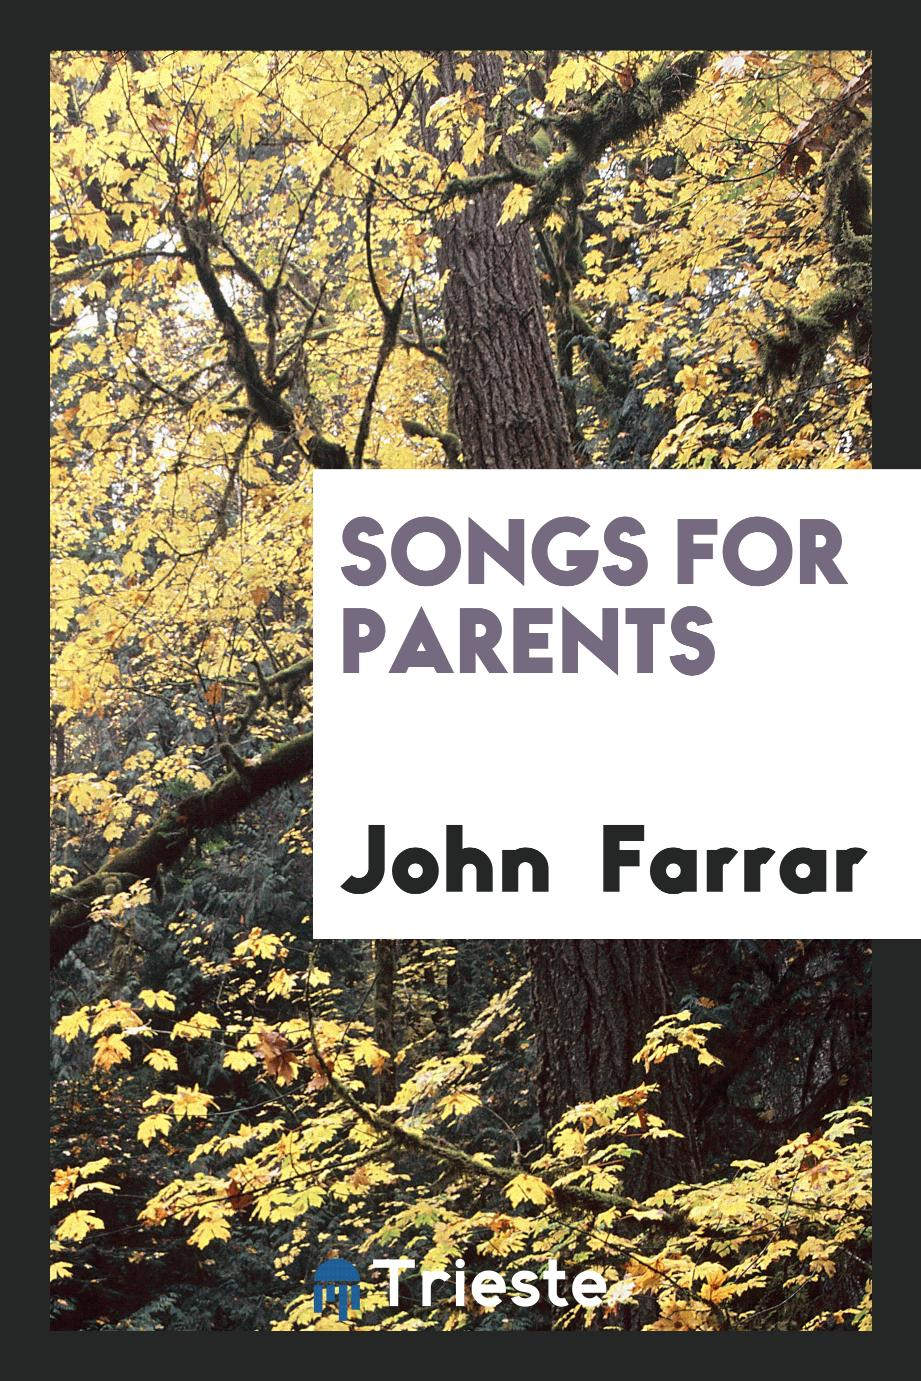 Songs for Parents